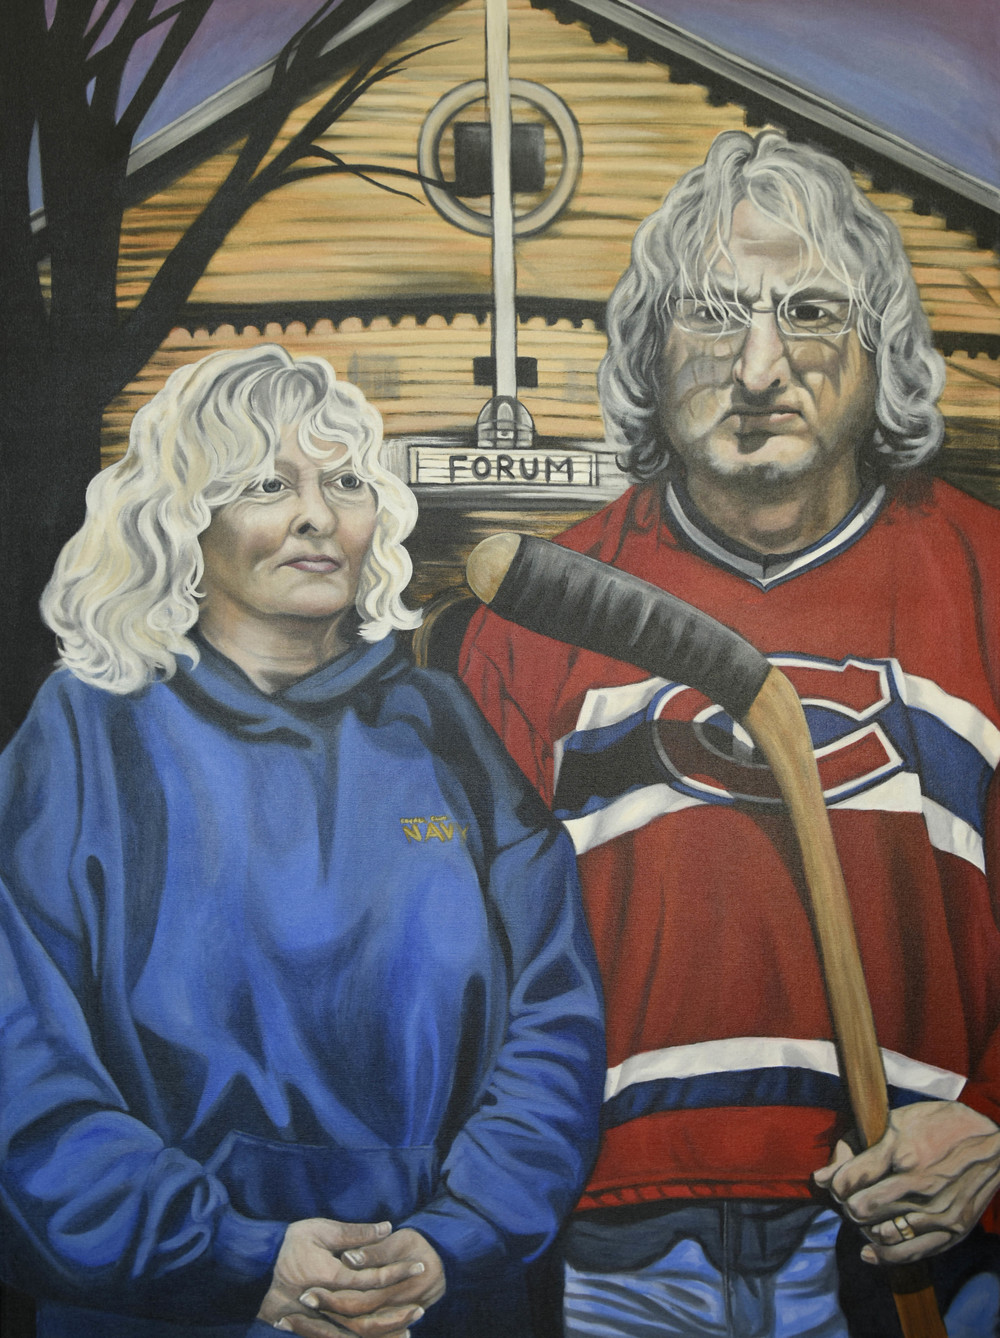 Canadien's Gothic - 36x48, original acrylic on canvas, Brandy Saturley, 2014.  People's Choice Award, Art: Objet De Sport @ Gallery 501, Sherwood Park, AB